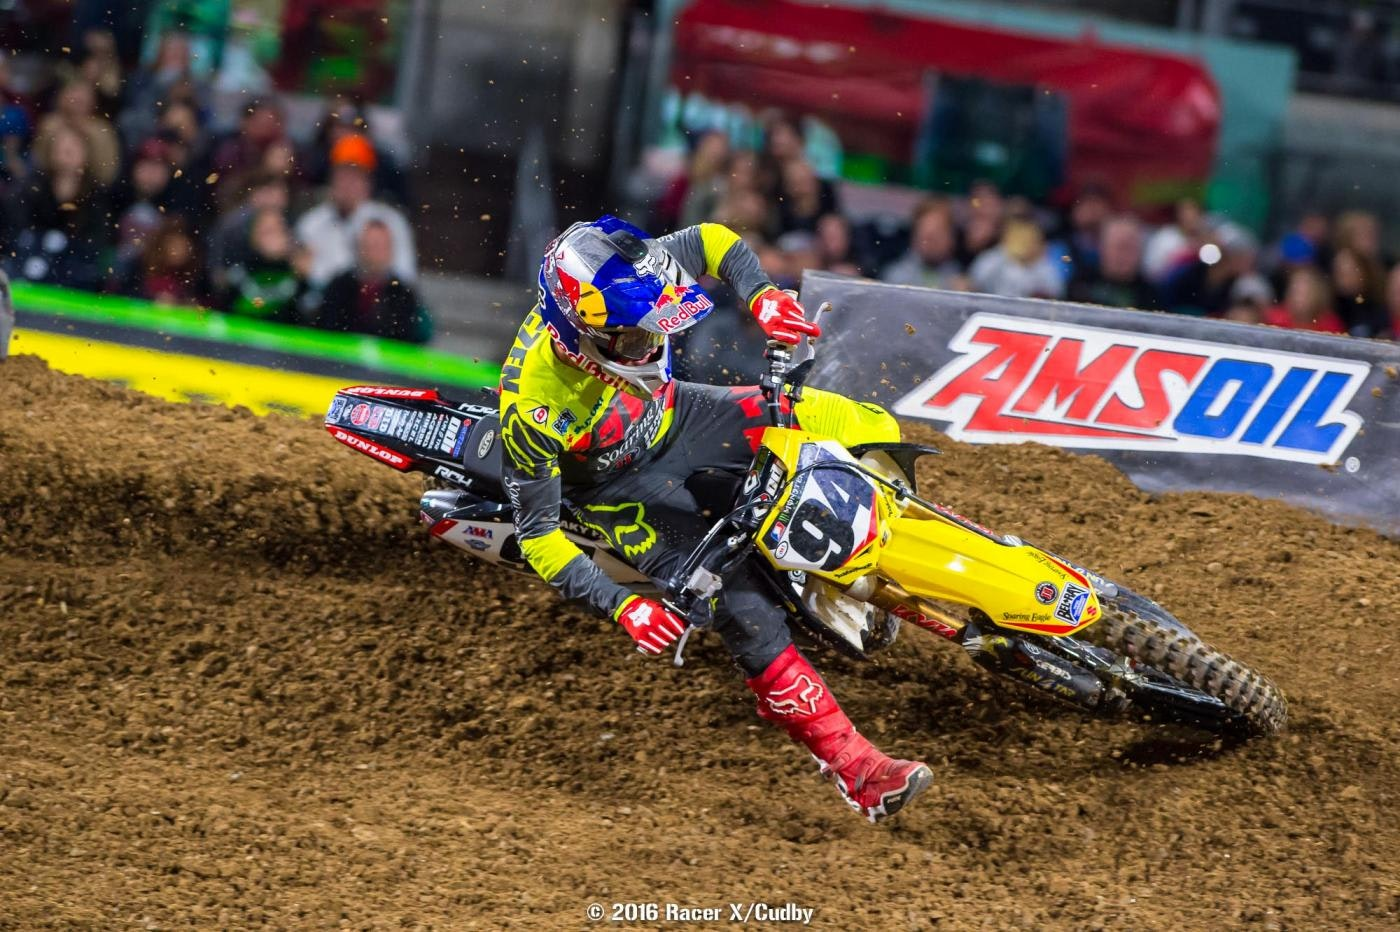 A mistake from Ken Roczen cost him a chance at the podium.